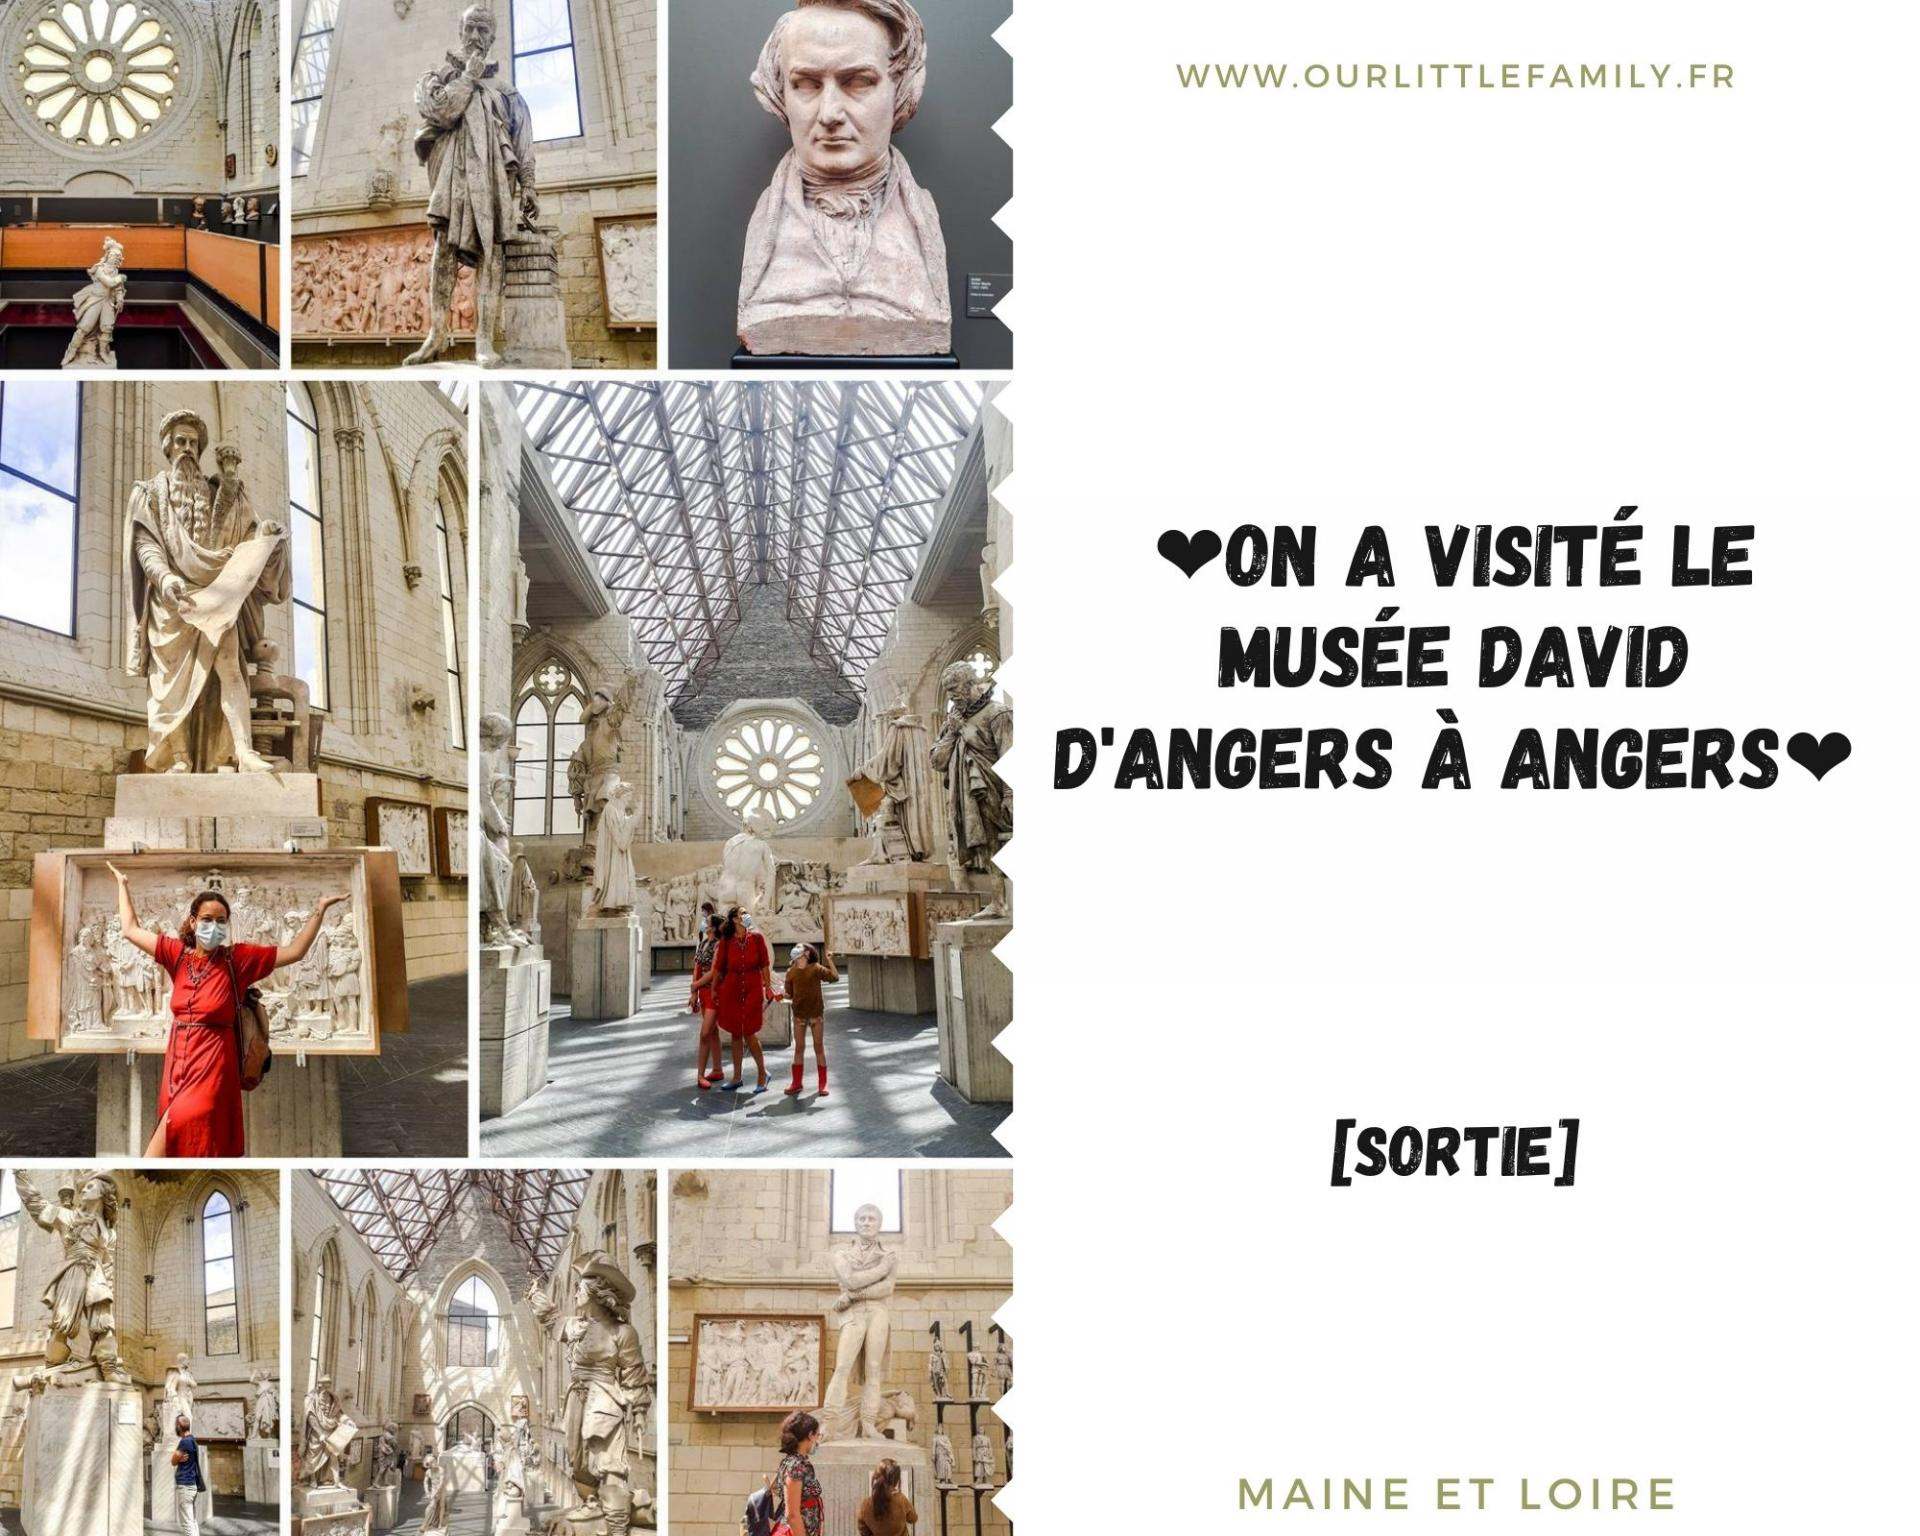 On a visite le musee david d angers a angers